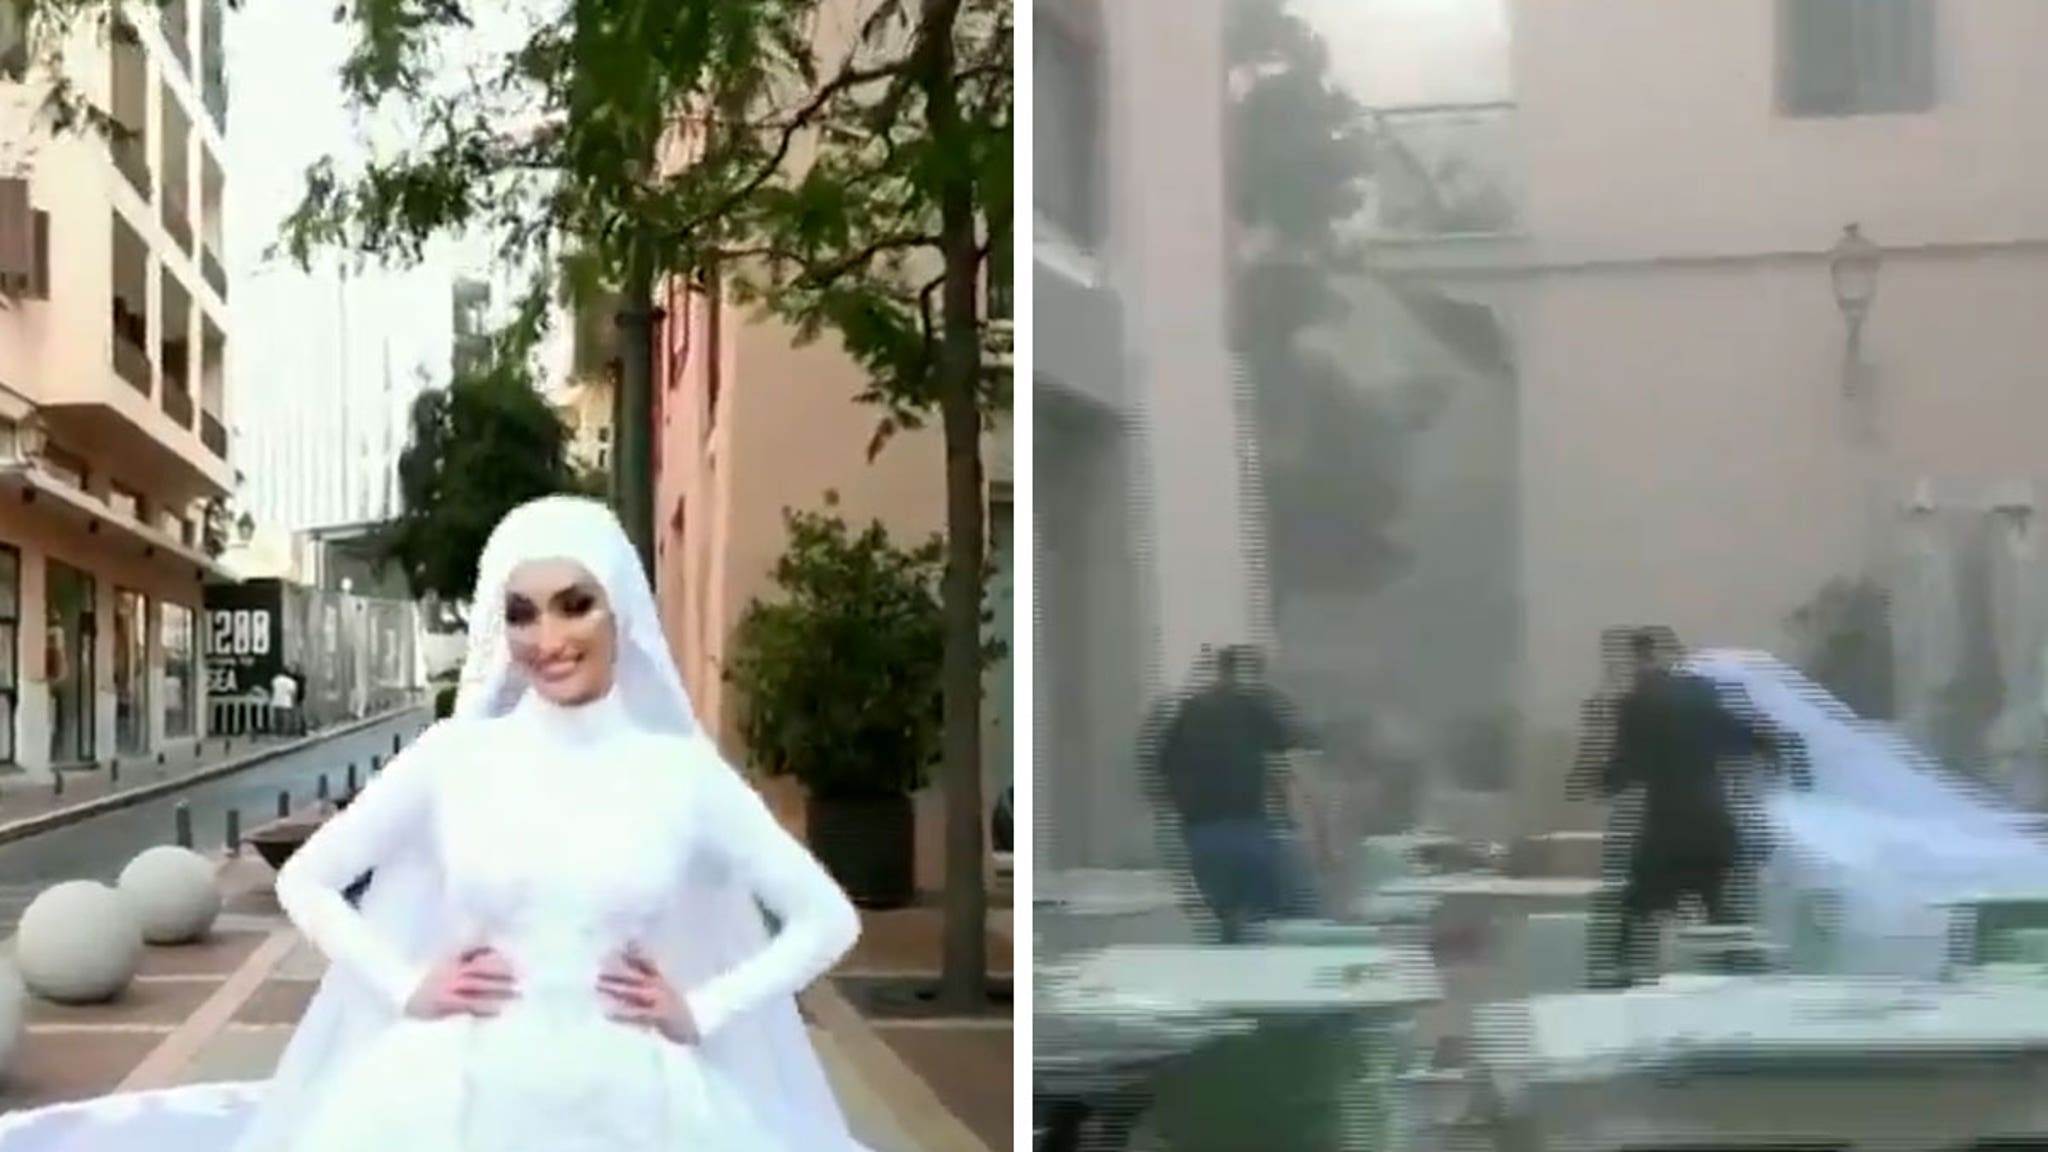 Video of Bride Taking Wedding Pics in Beirut Shows Moment of Explosion